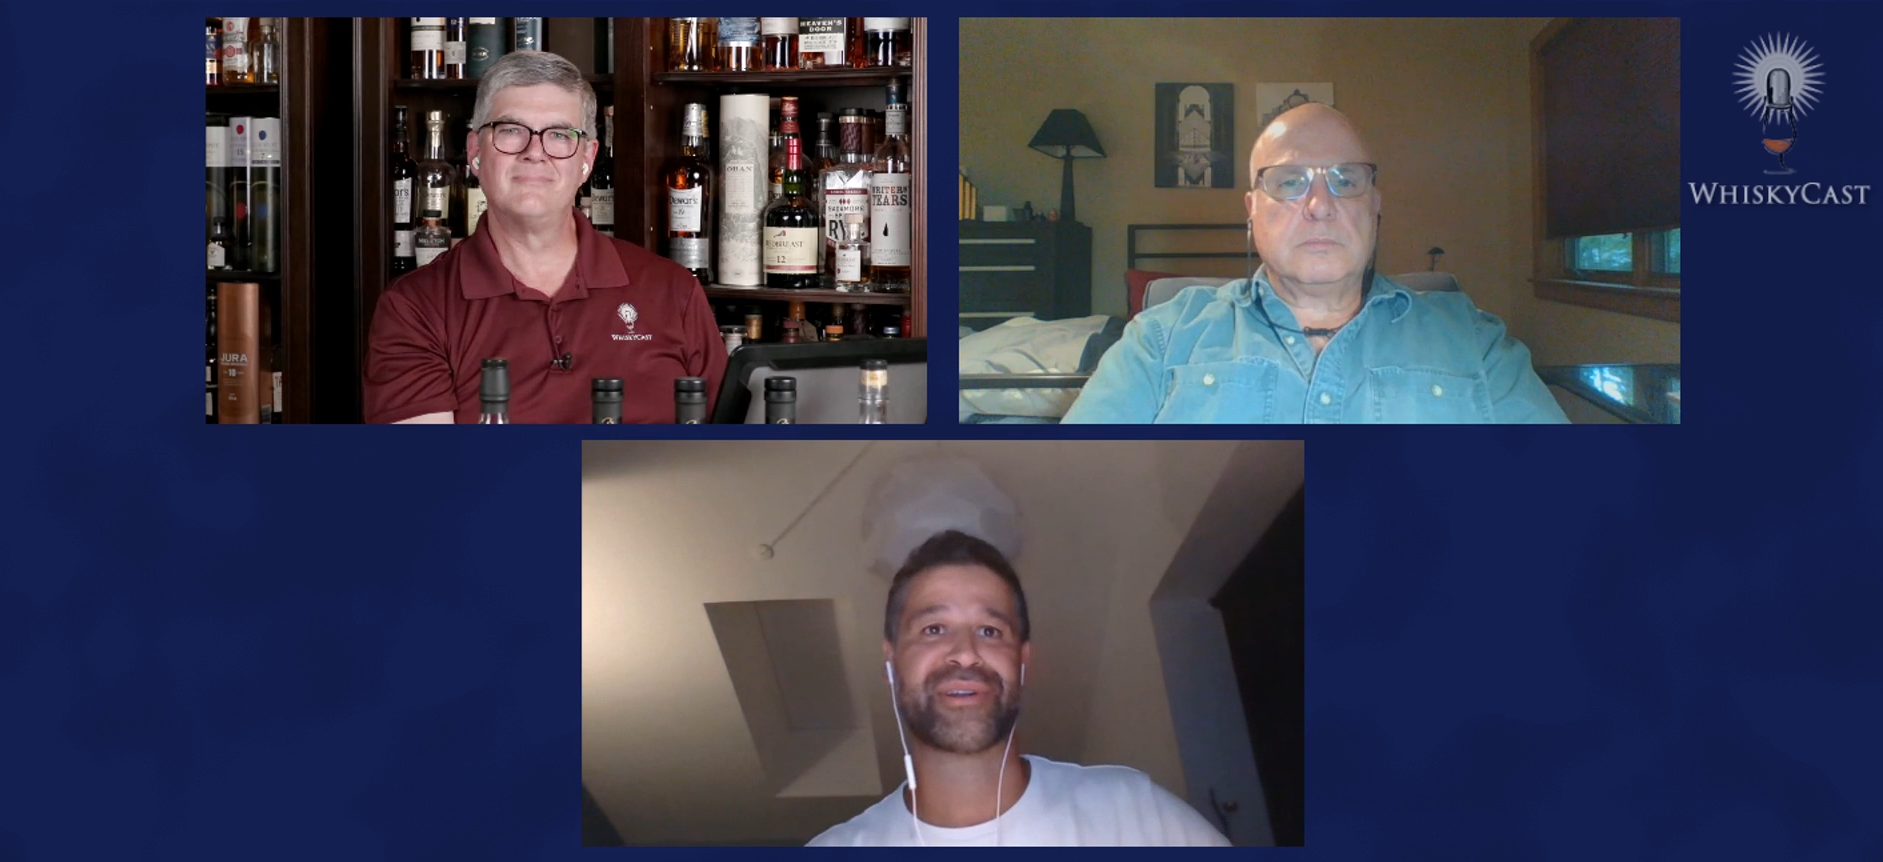 Dad's Hat Rye co-founder Herman Mihalich and Stauning Whisky co-founder Alex Munch joined us on the latest #HappyHourLive webcast Friday night.